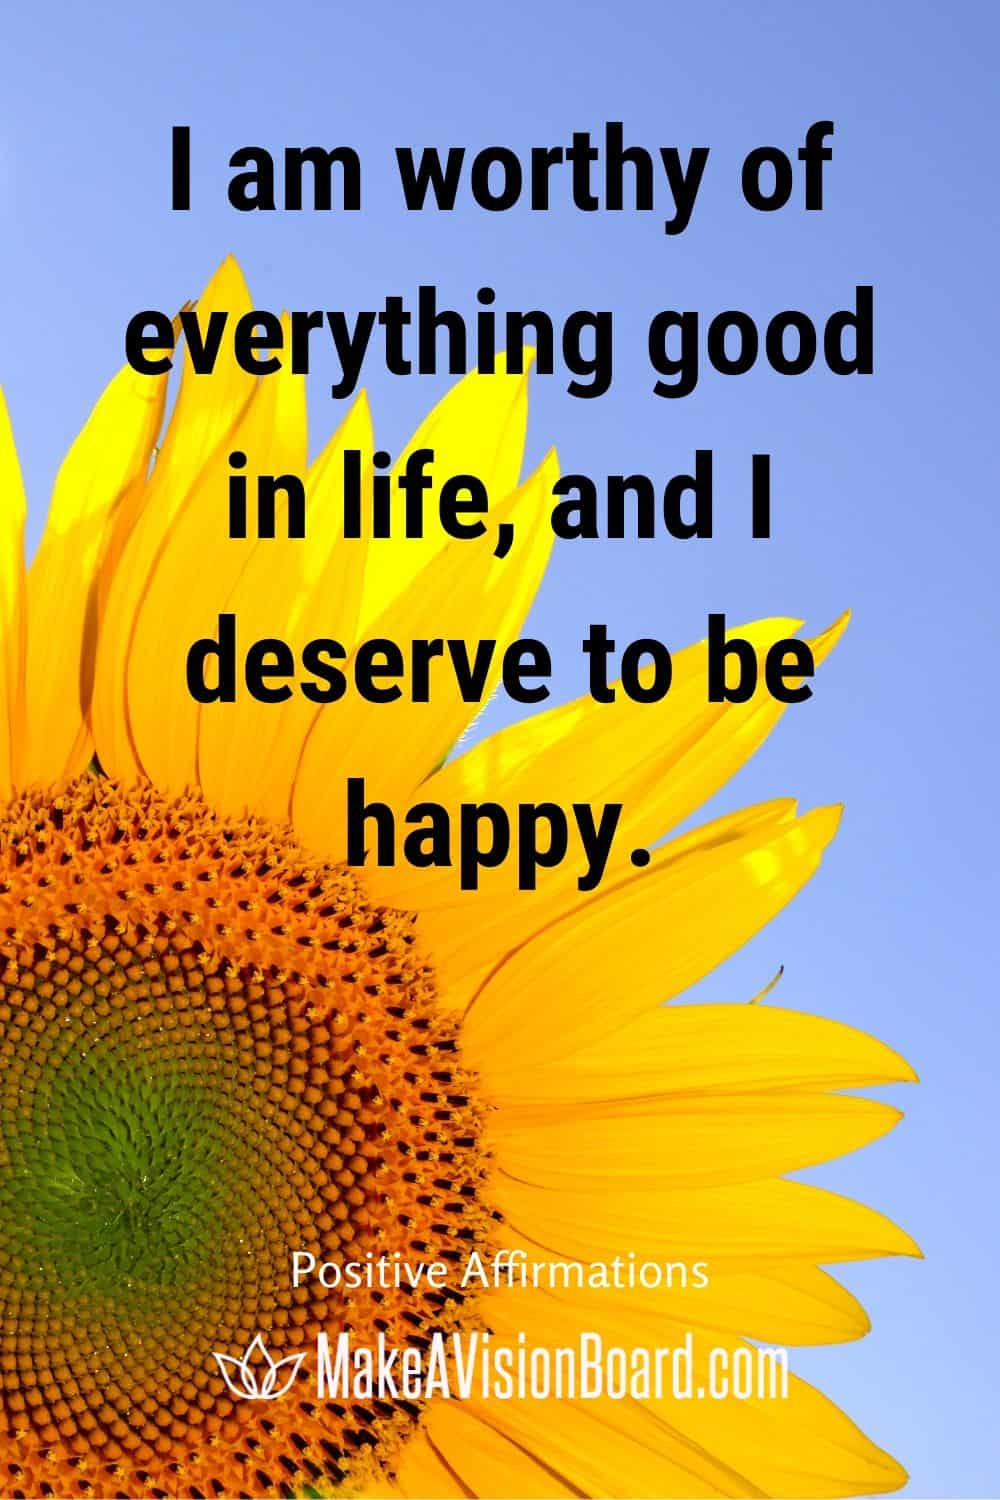 I am worthy of everything good in life, and I deserve to be happy.